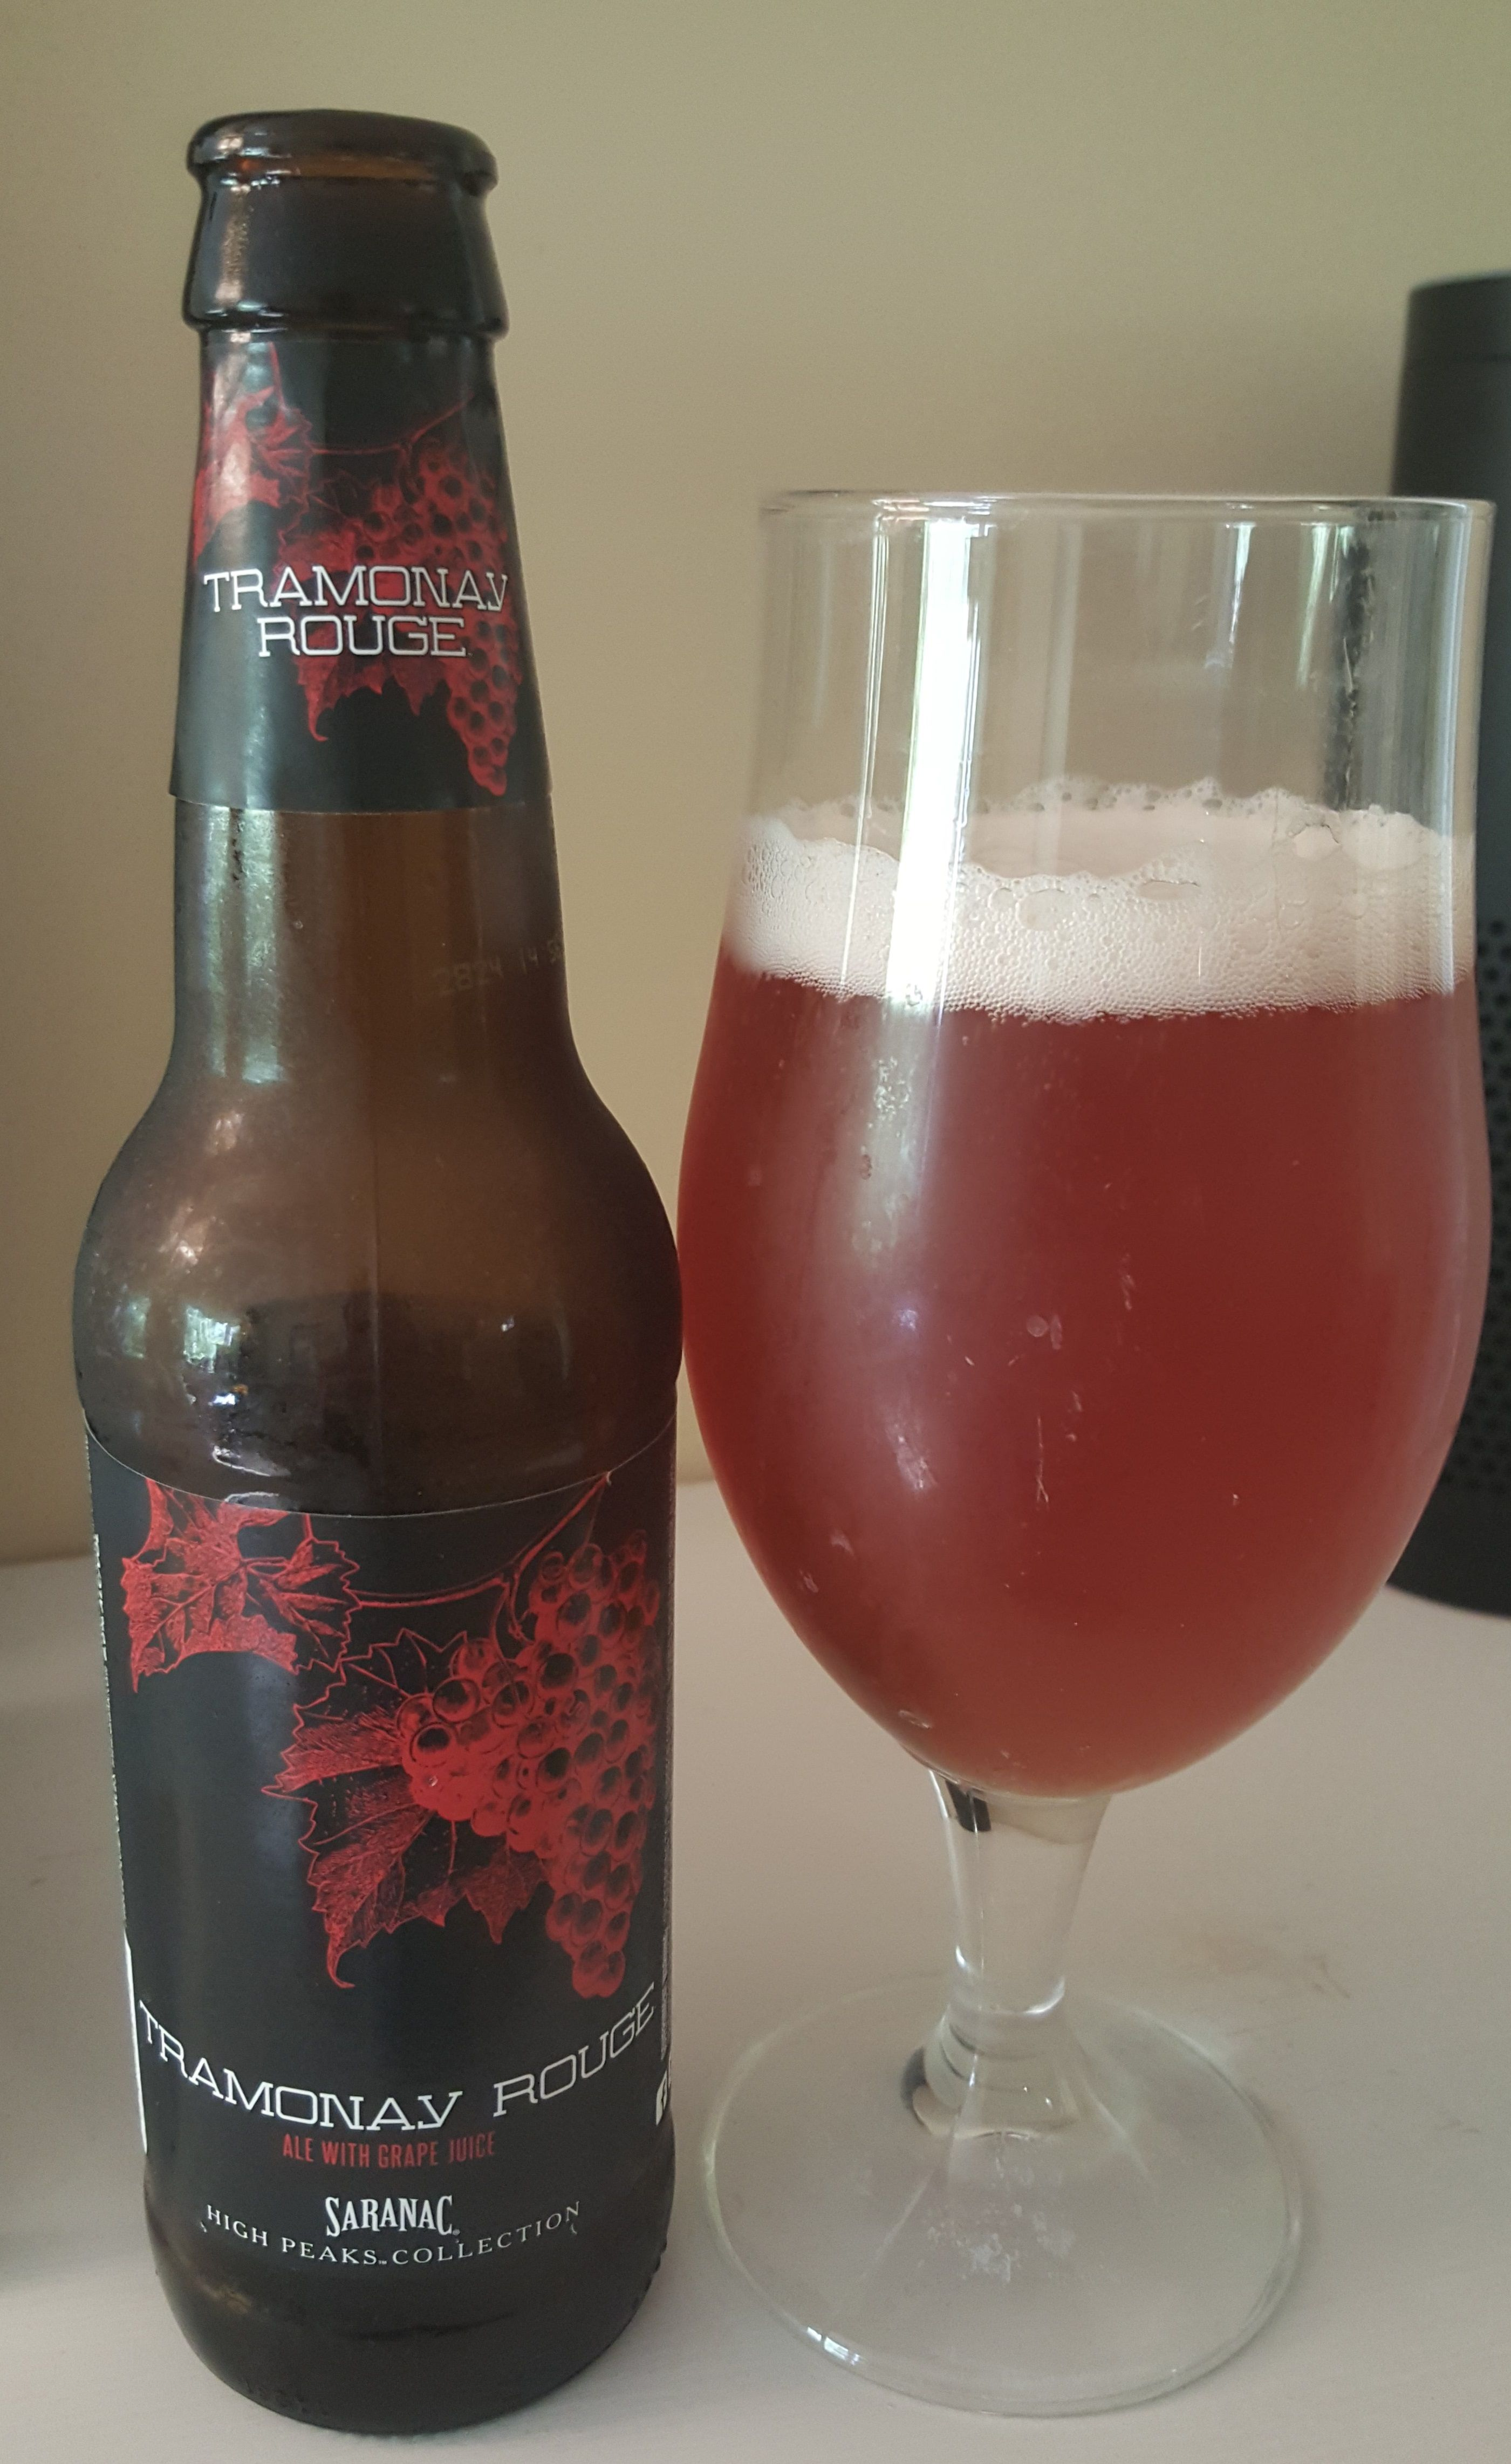 Saranac Tramonay Rouge Is A Saison Brewed With Grape Juice And Comes In At 6 5 Abv The Appearance Is Translucent With A Light Red Hue A Malt Beer Saranac Beer